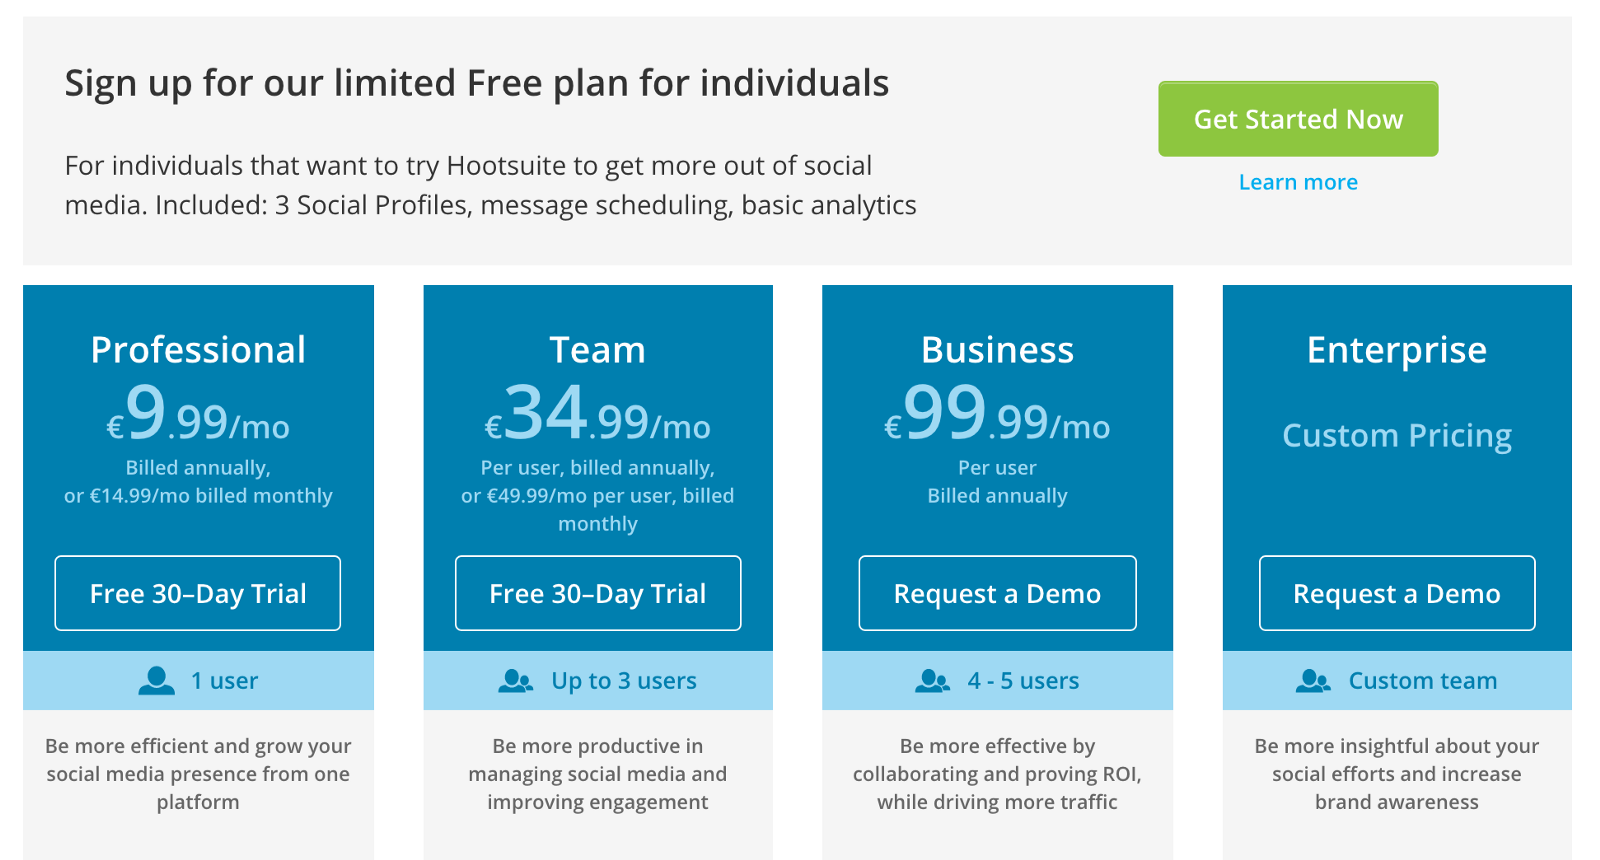 Hootsuite's pricing plan